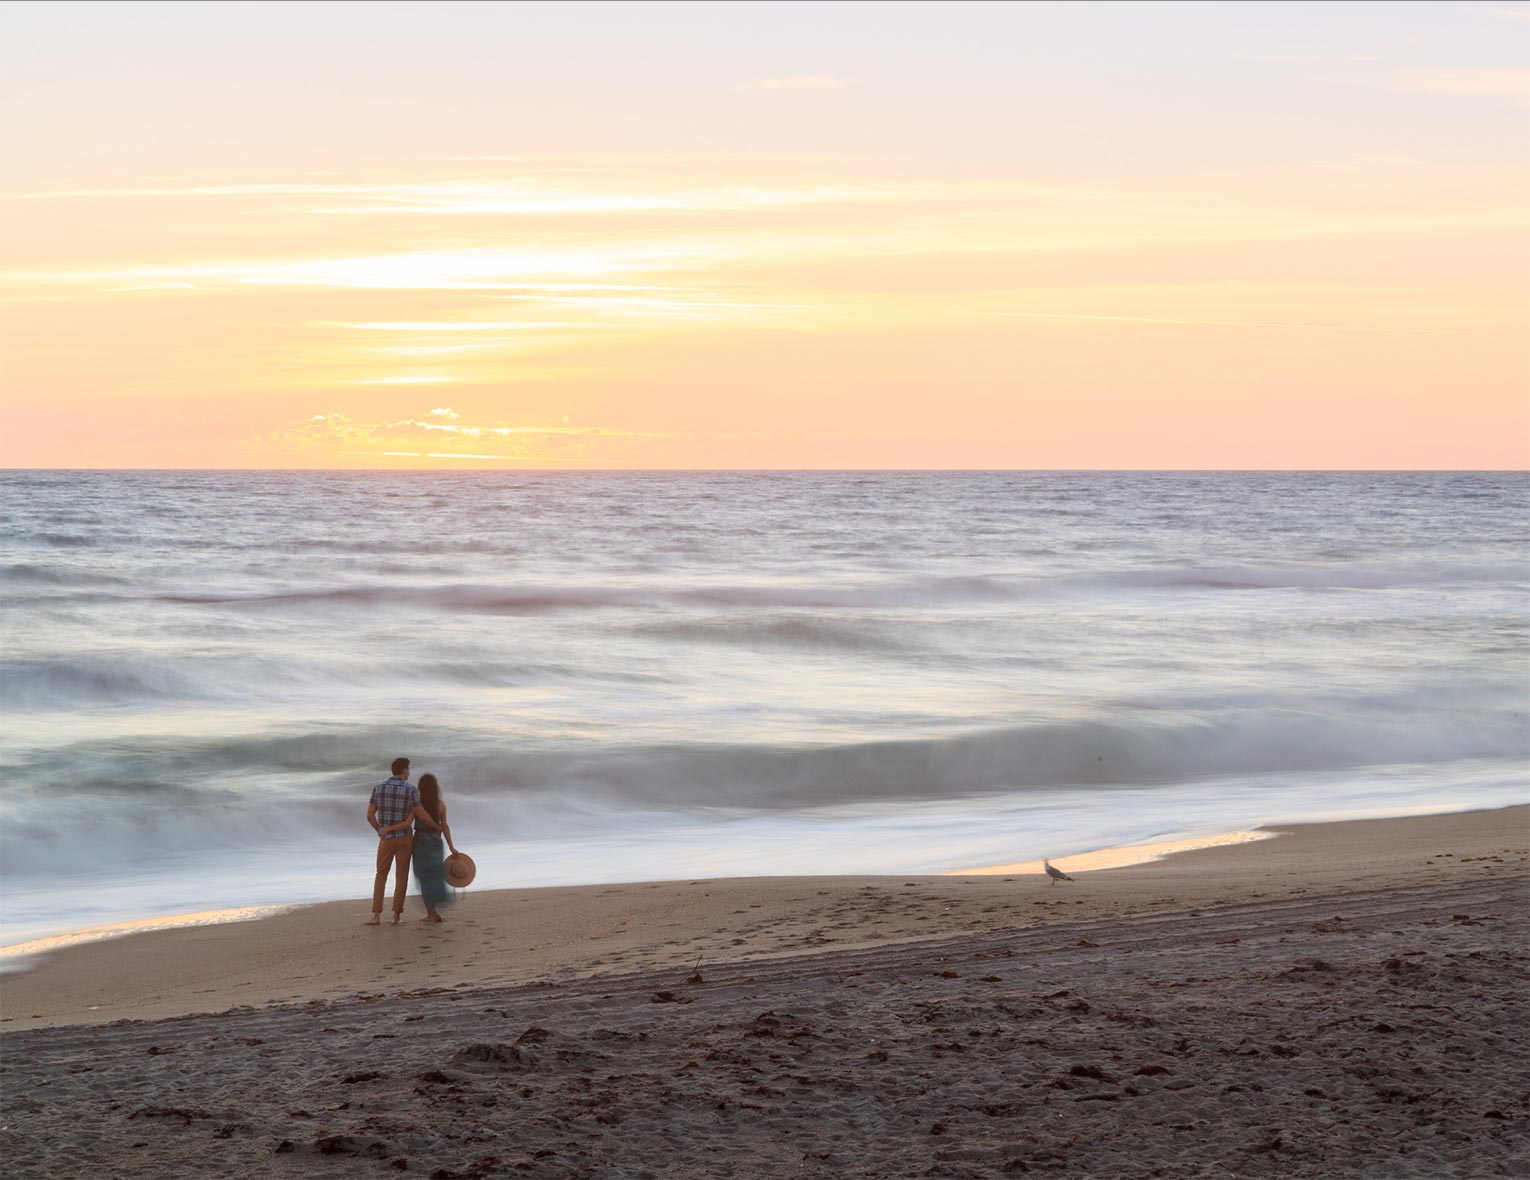 Couple looking at the ocean sunset while on the beach